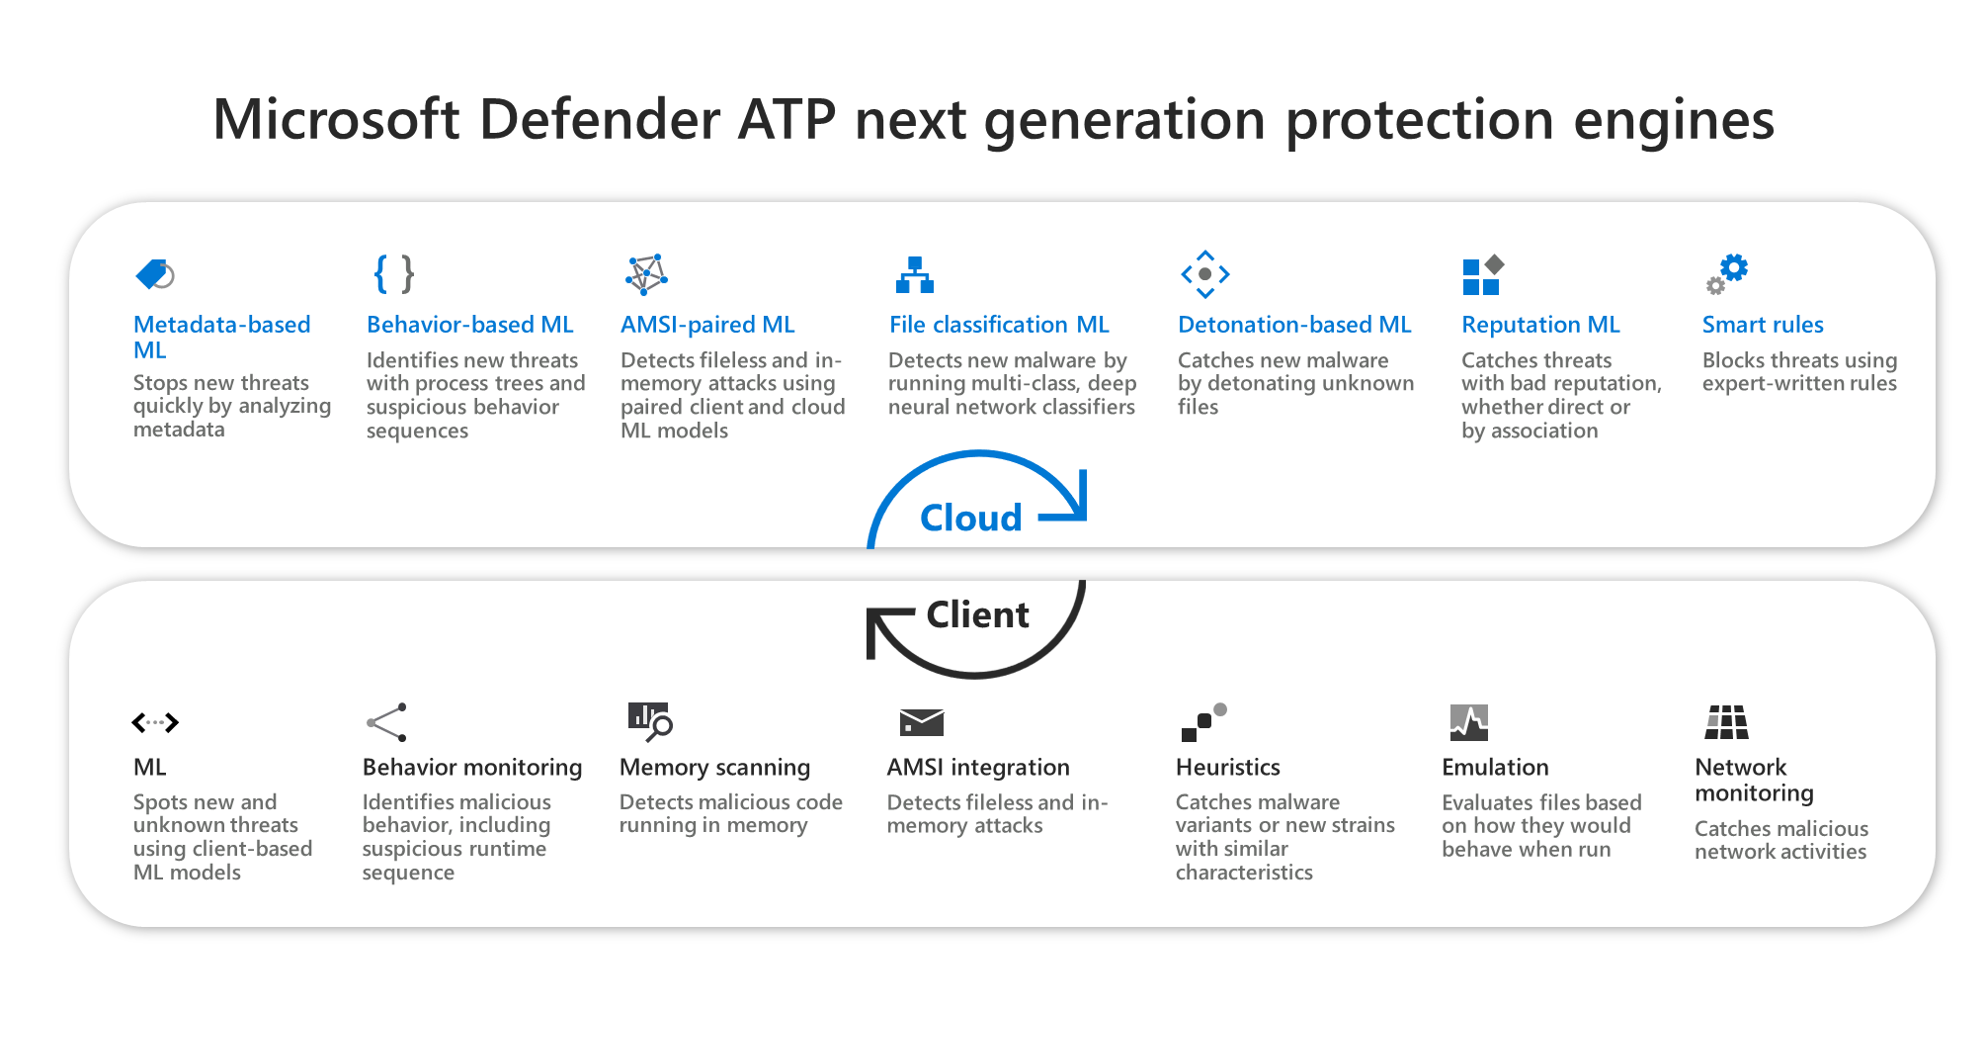 Inside out: Get to know the advanced technologies at the core of Microsoft Defender ATP next generation protection